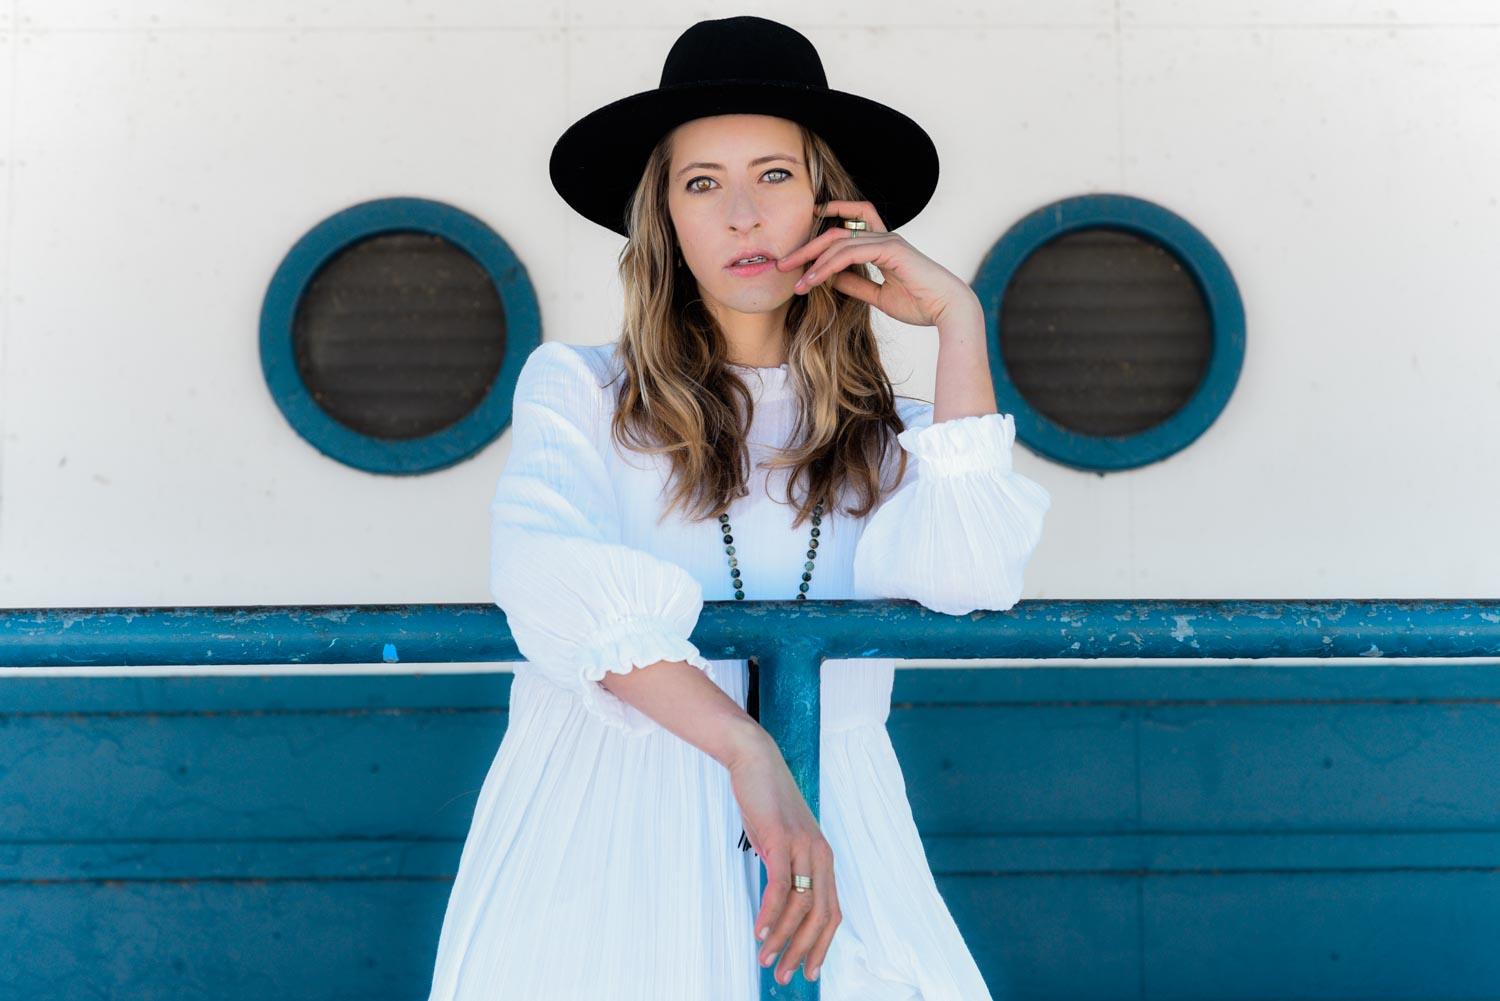 A portrait of Amanda wearing a white dress and black hat shot on a warm winter day at the boat house on Montrose beach in Chicago